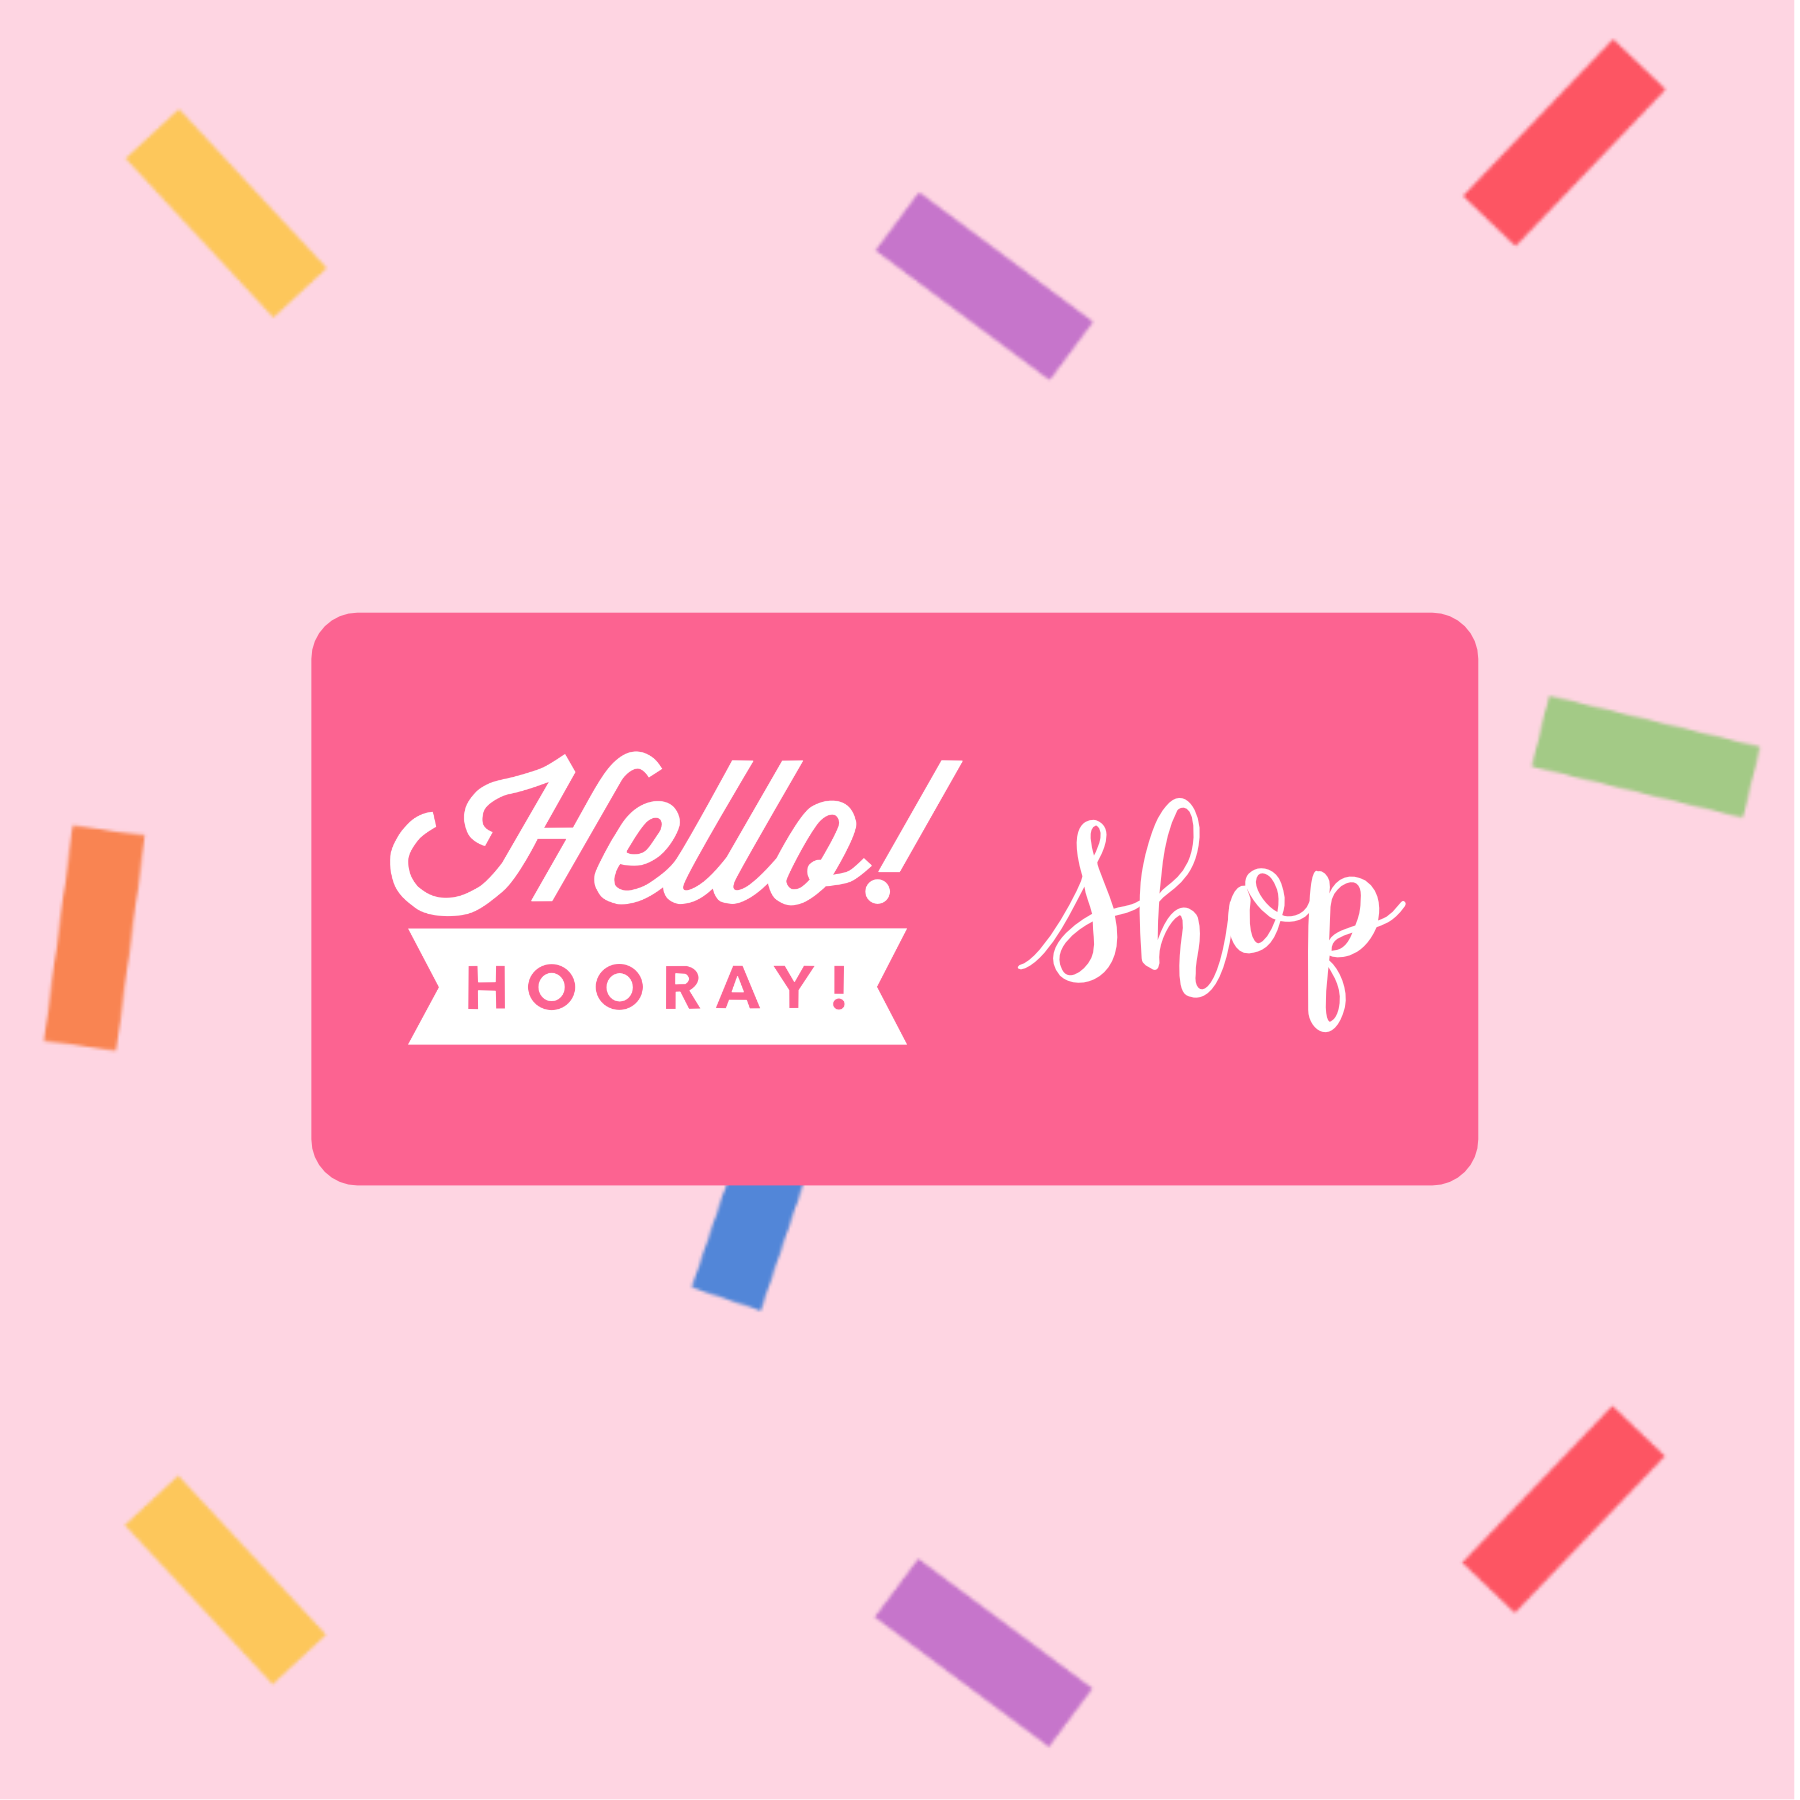 Hello! Hooray! shop link